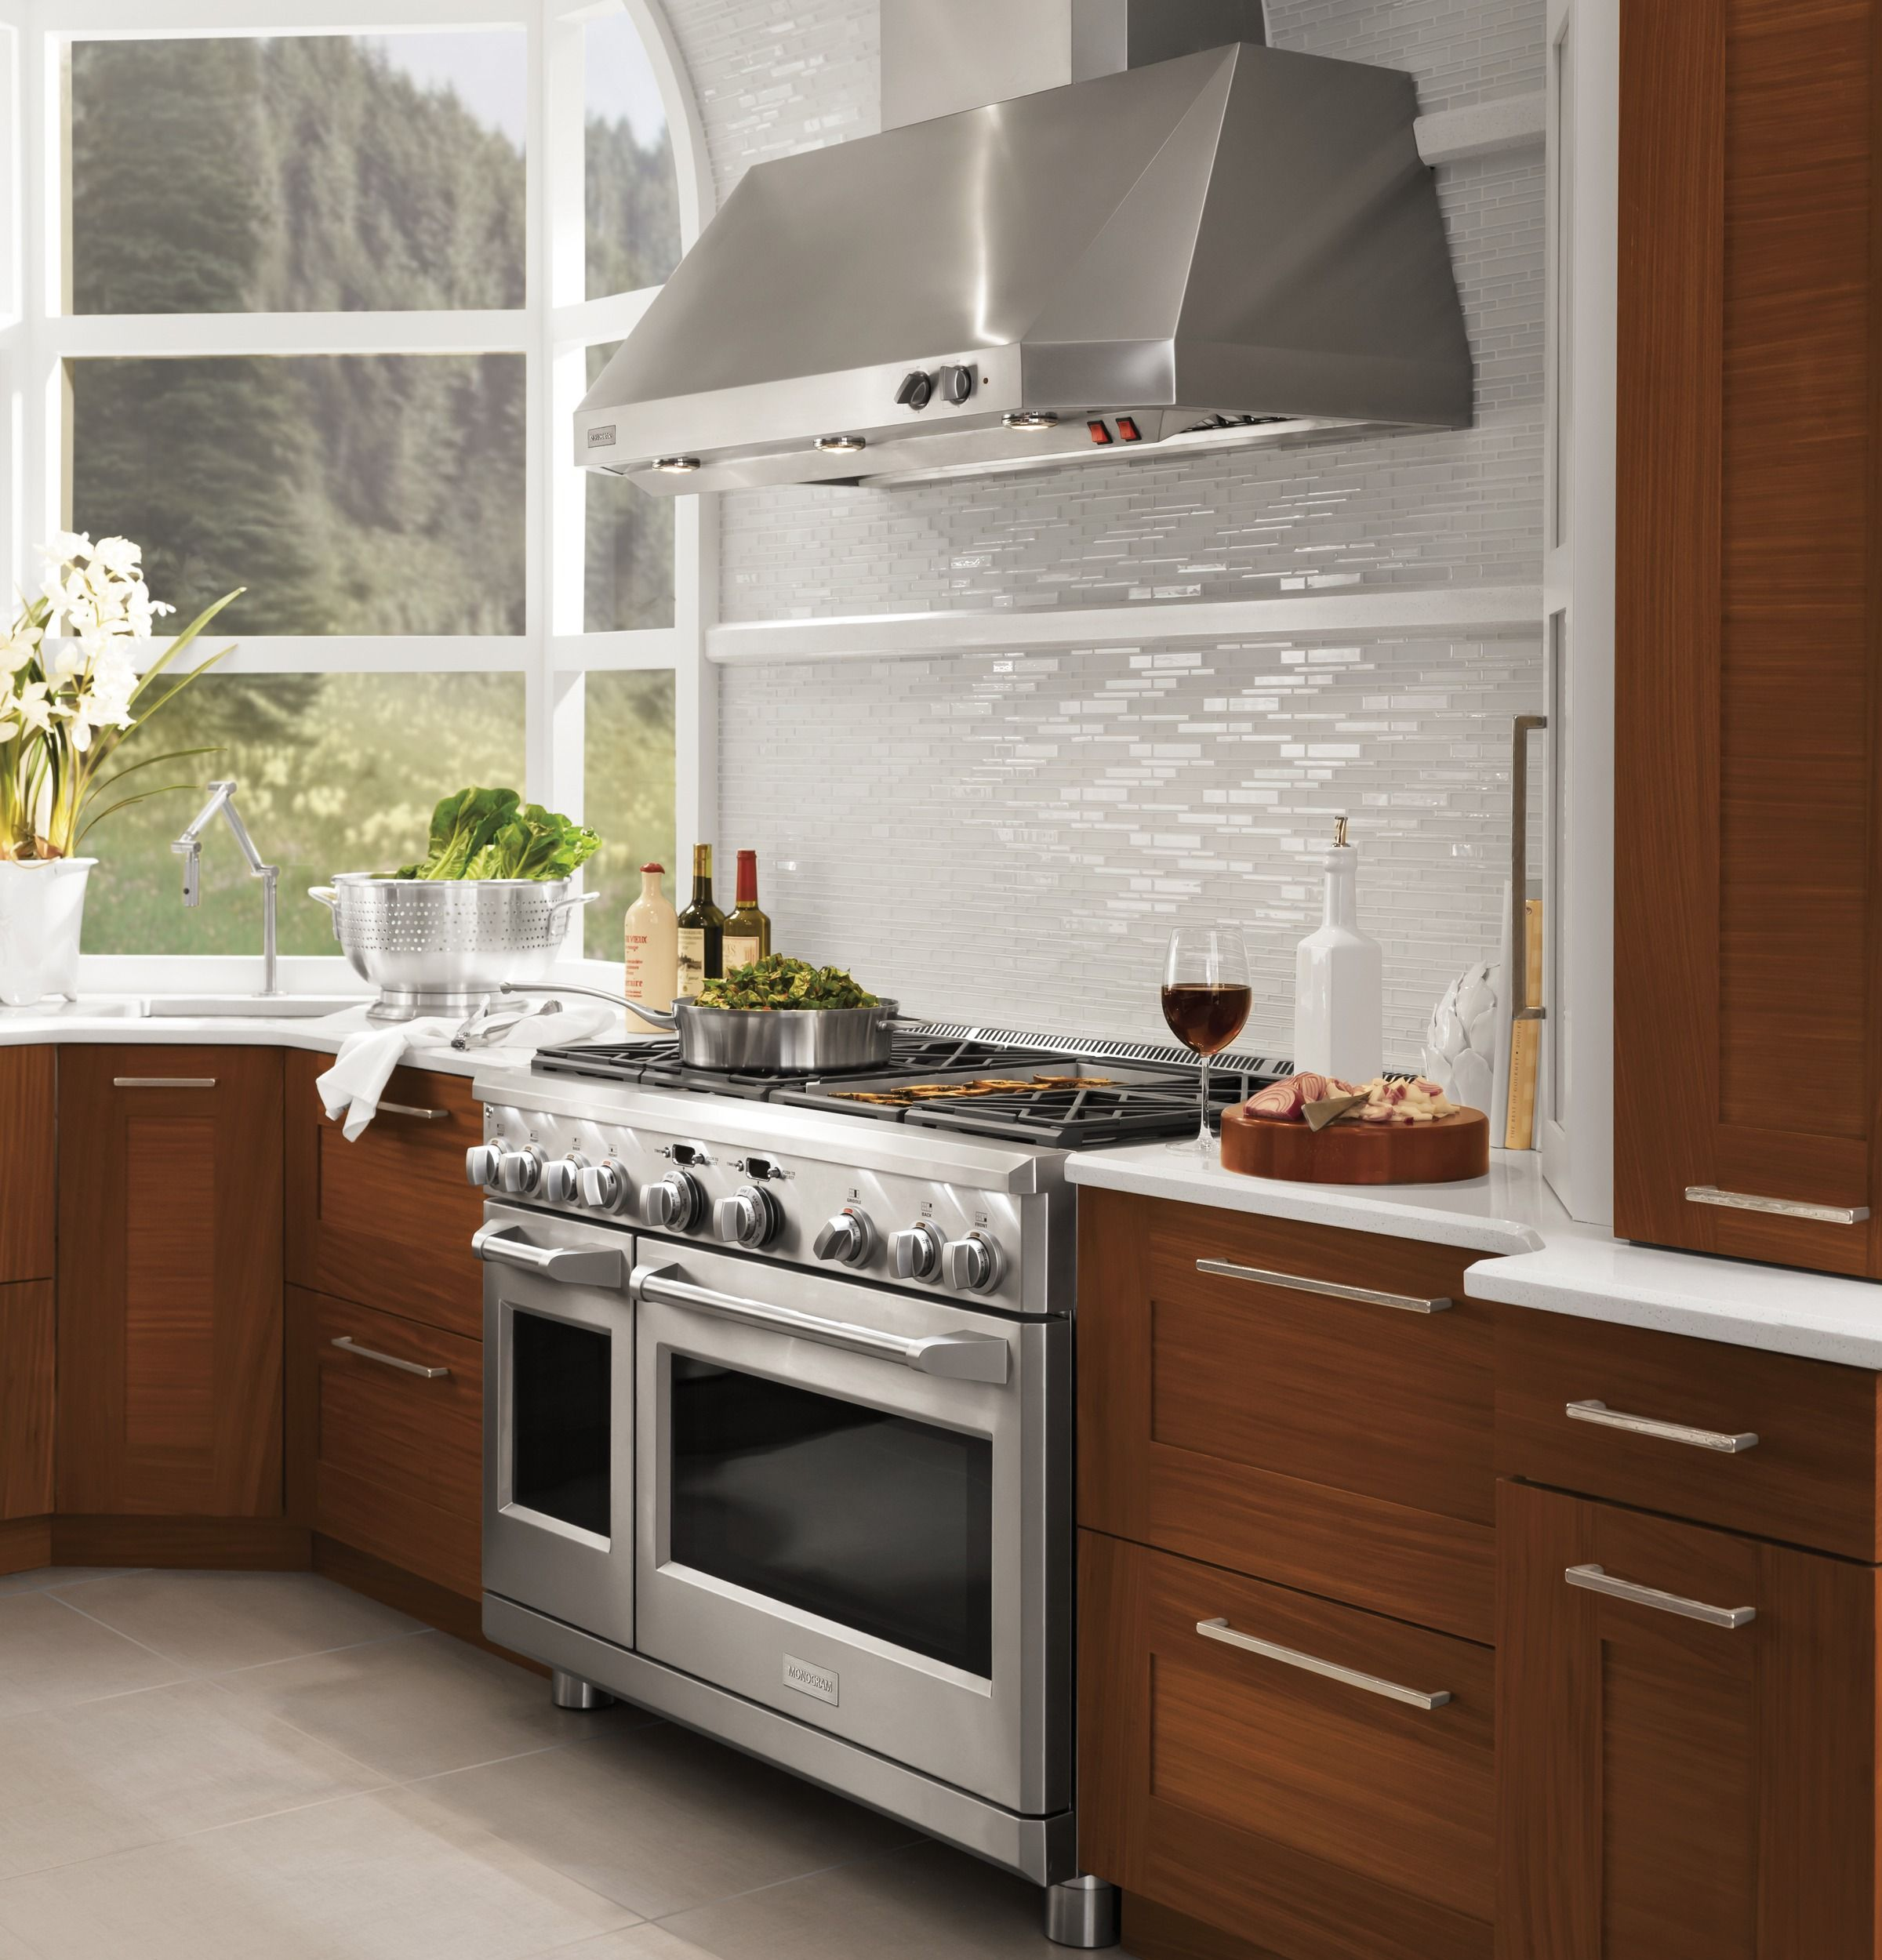 """Stainless Steel Kitchen Cabinets With Oven: Monogram® 48"""" Stainless Steel Professional"""